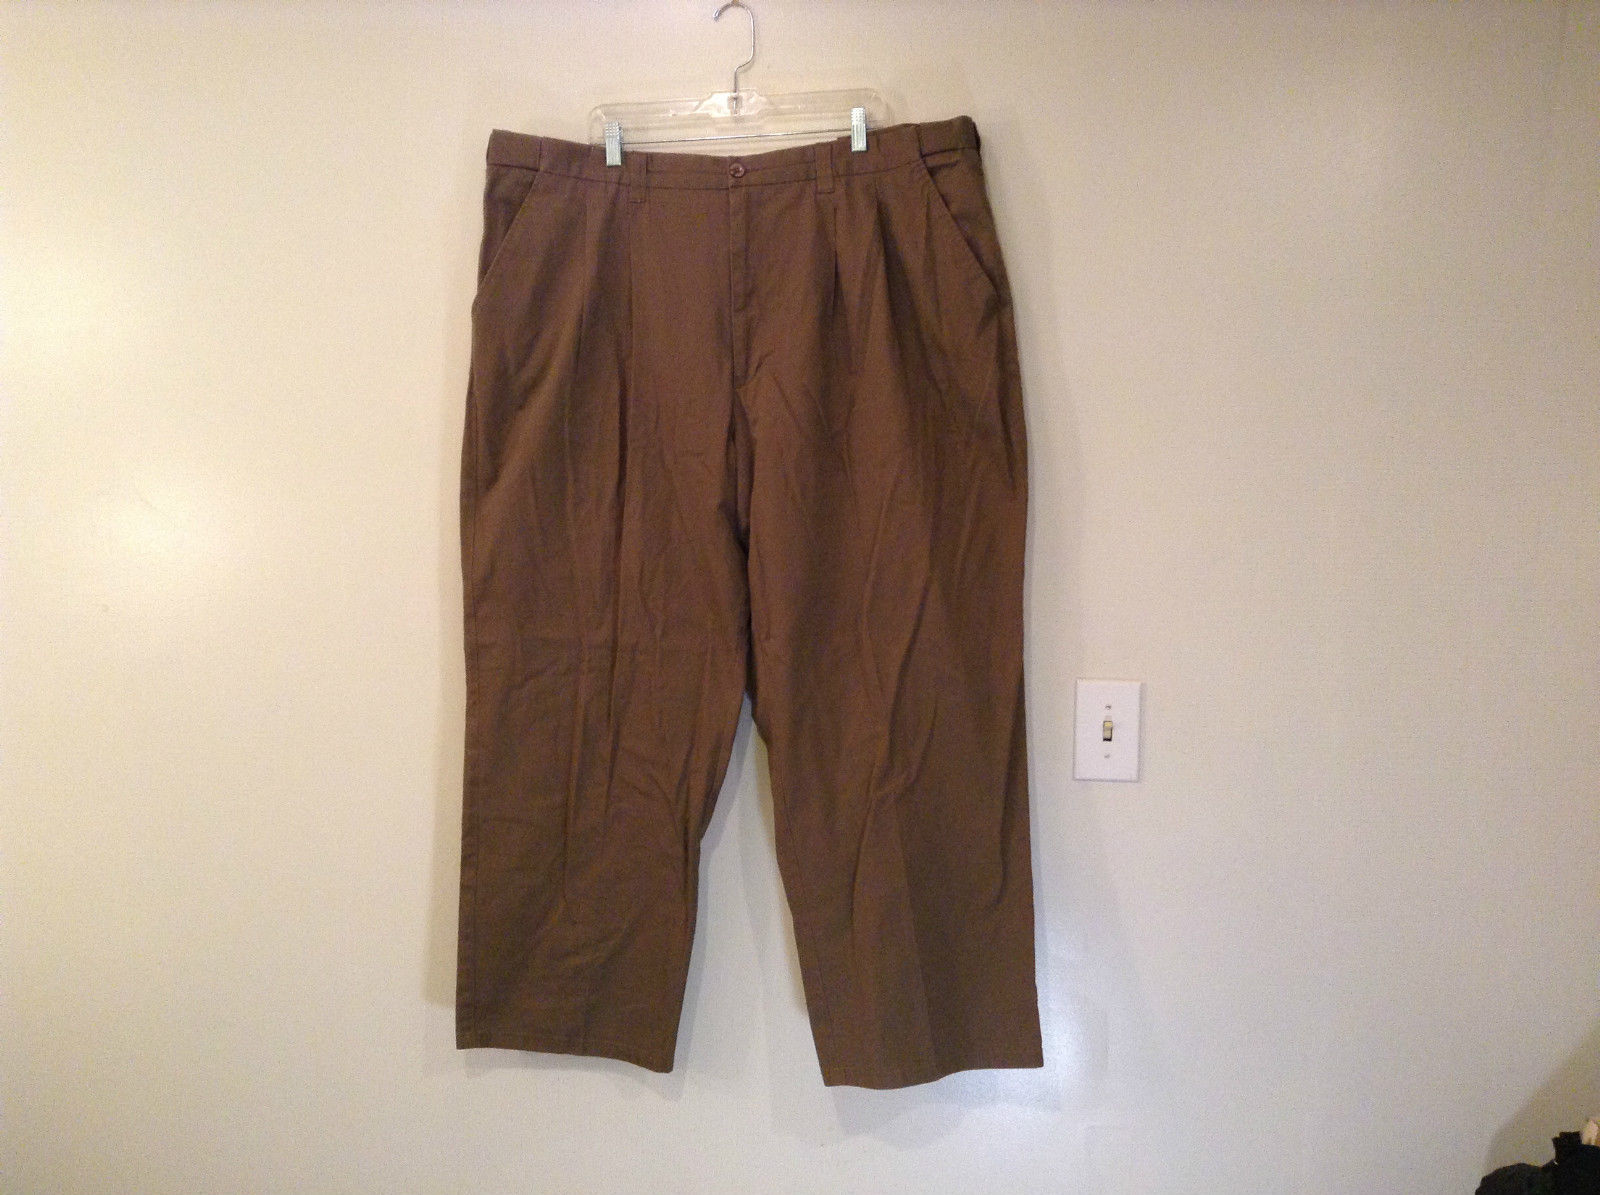 Brown Pleated Front Pants Elastic Inserts on Waist for Adjusting No Size Tag